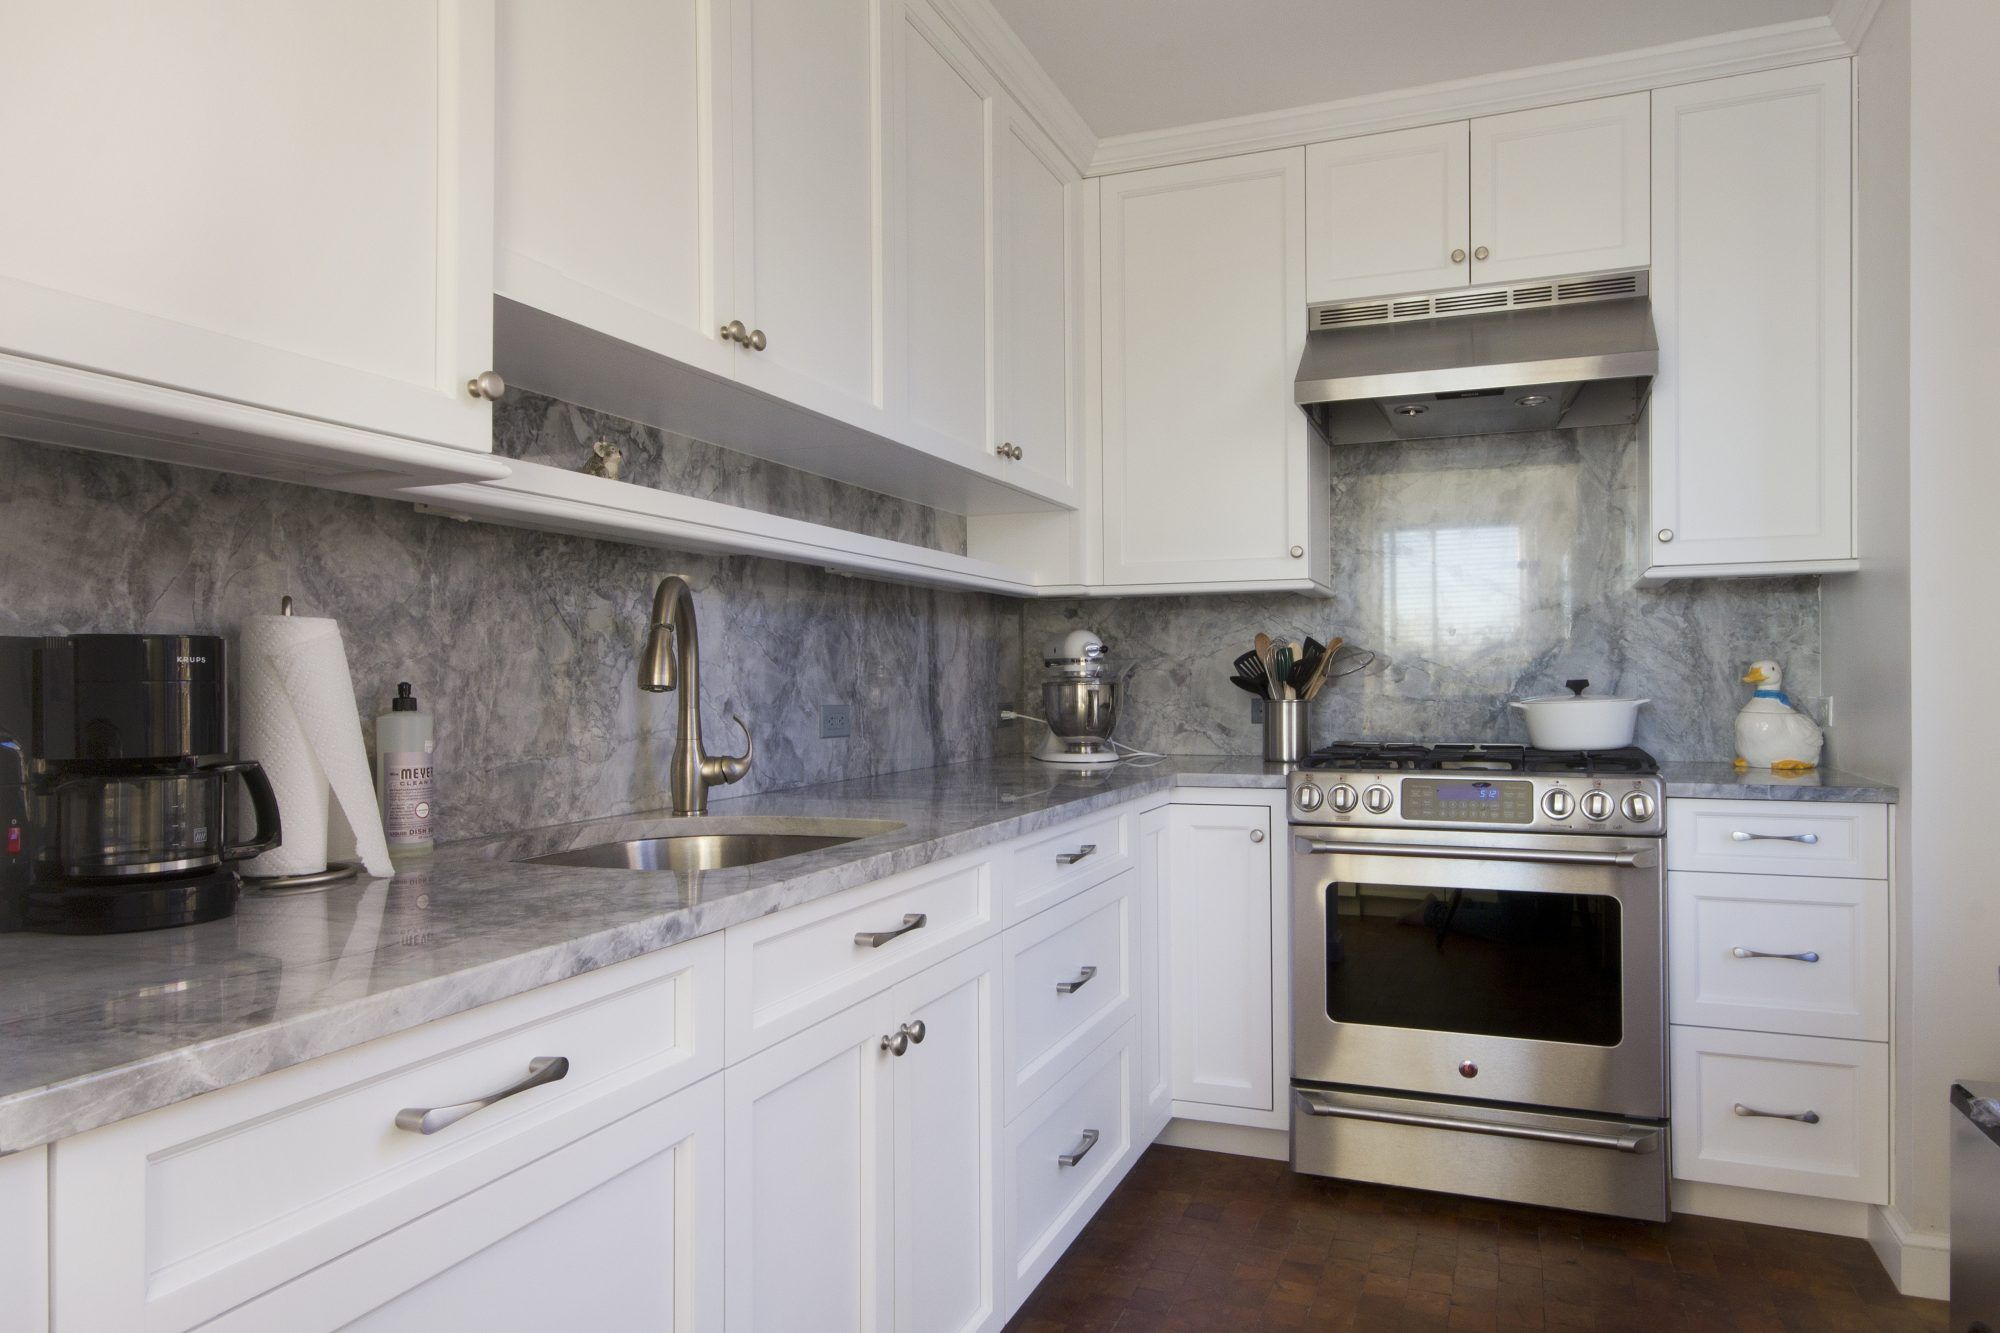 Battery Park Transitional Kitchen Design And Remodel Custom Millwork Product With 1 Thick Do Transitional Kitchen Design Kitchen Remodel Design Kitchen Design